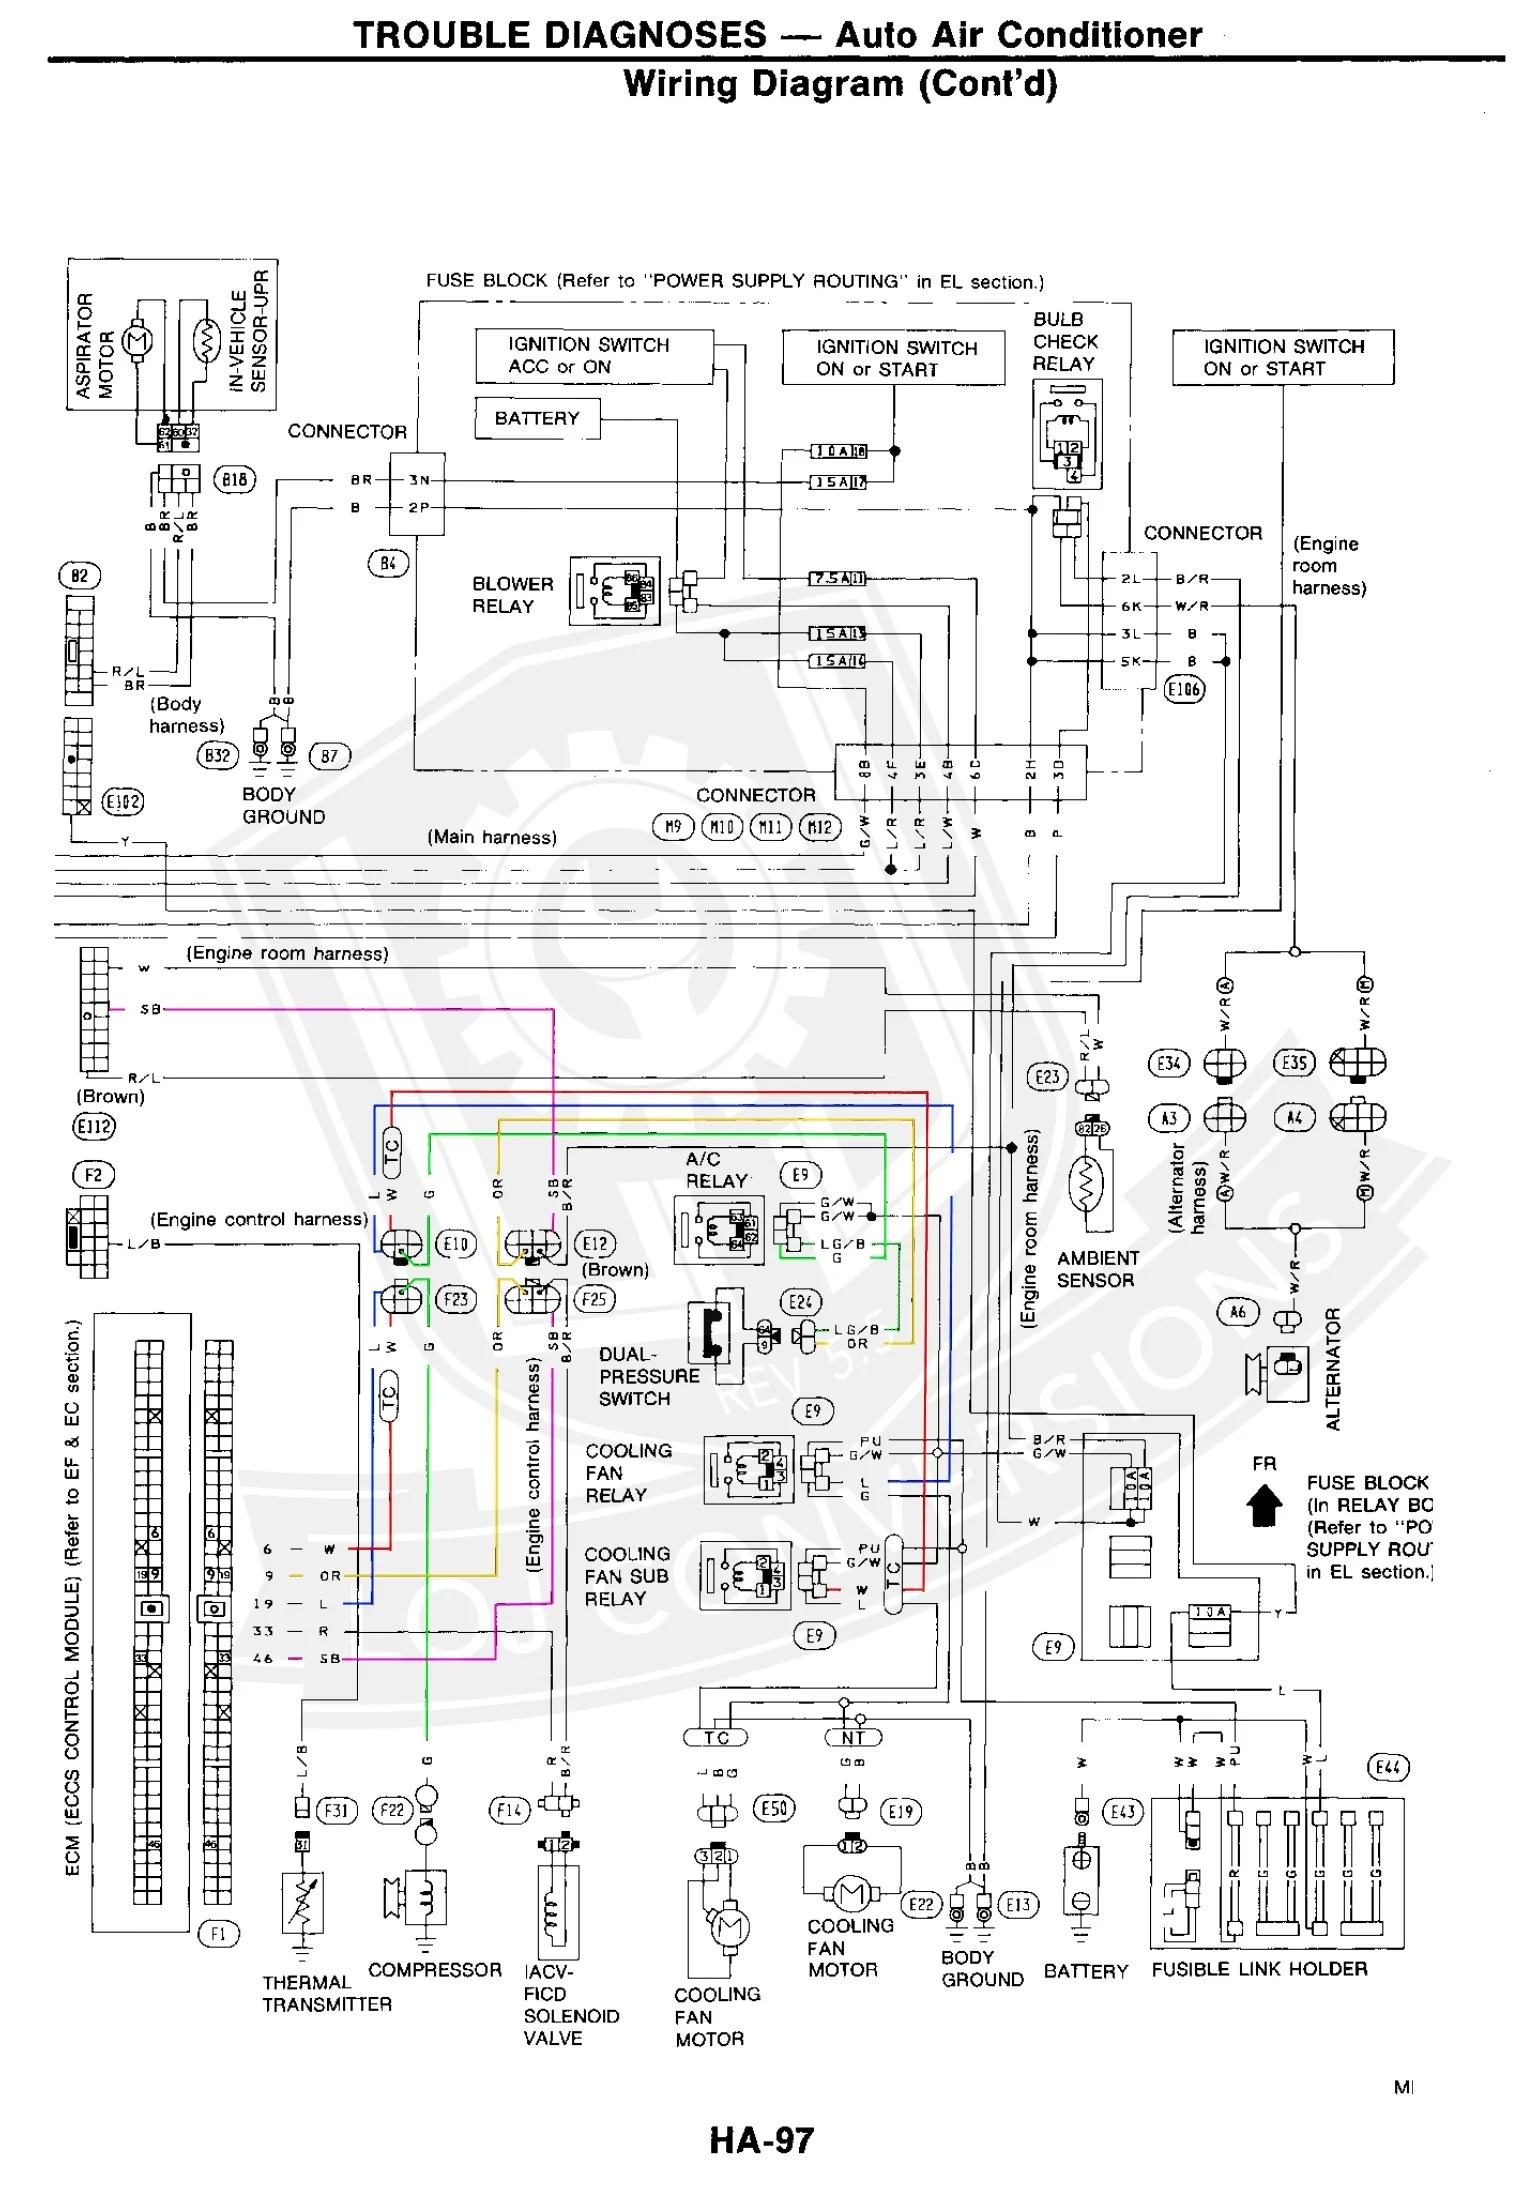 ls3 wiring diagram wiring diagram database ls3 engine harness wiring diagram [ 1515 x 2194 Pixel ]